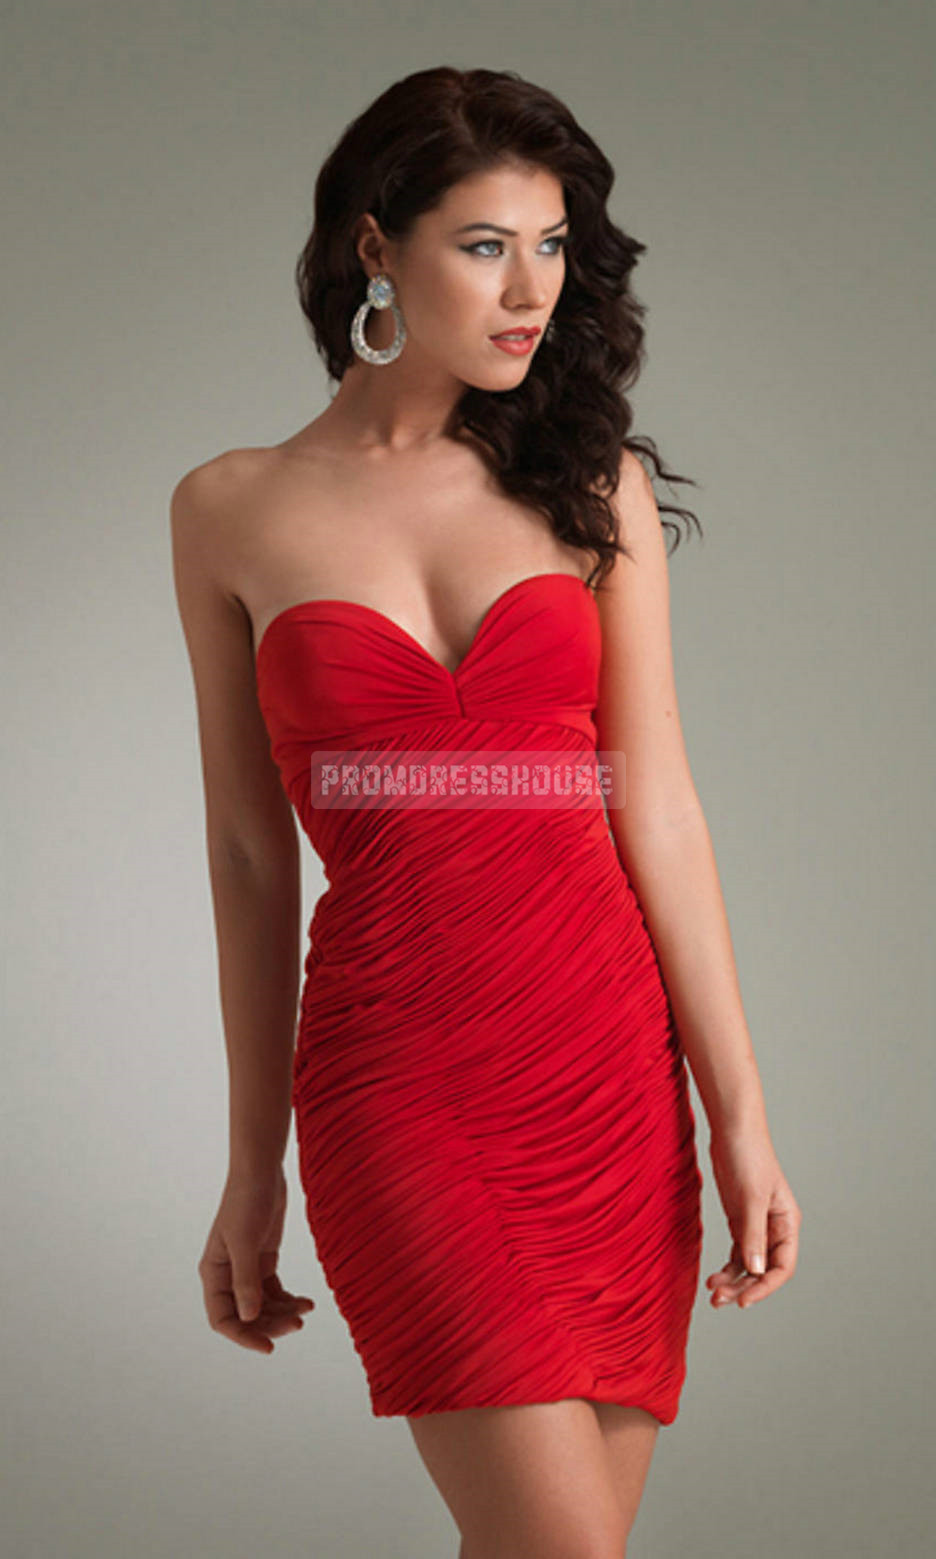 Sheath Charming Chiffon Pleated Short Length Sweetheart Cocktail Dress - Promdresshouse.com